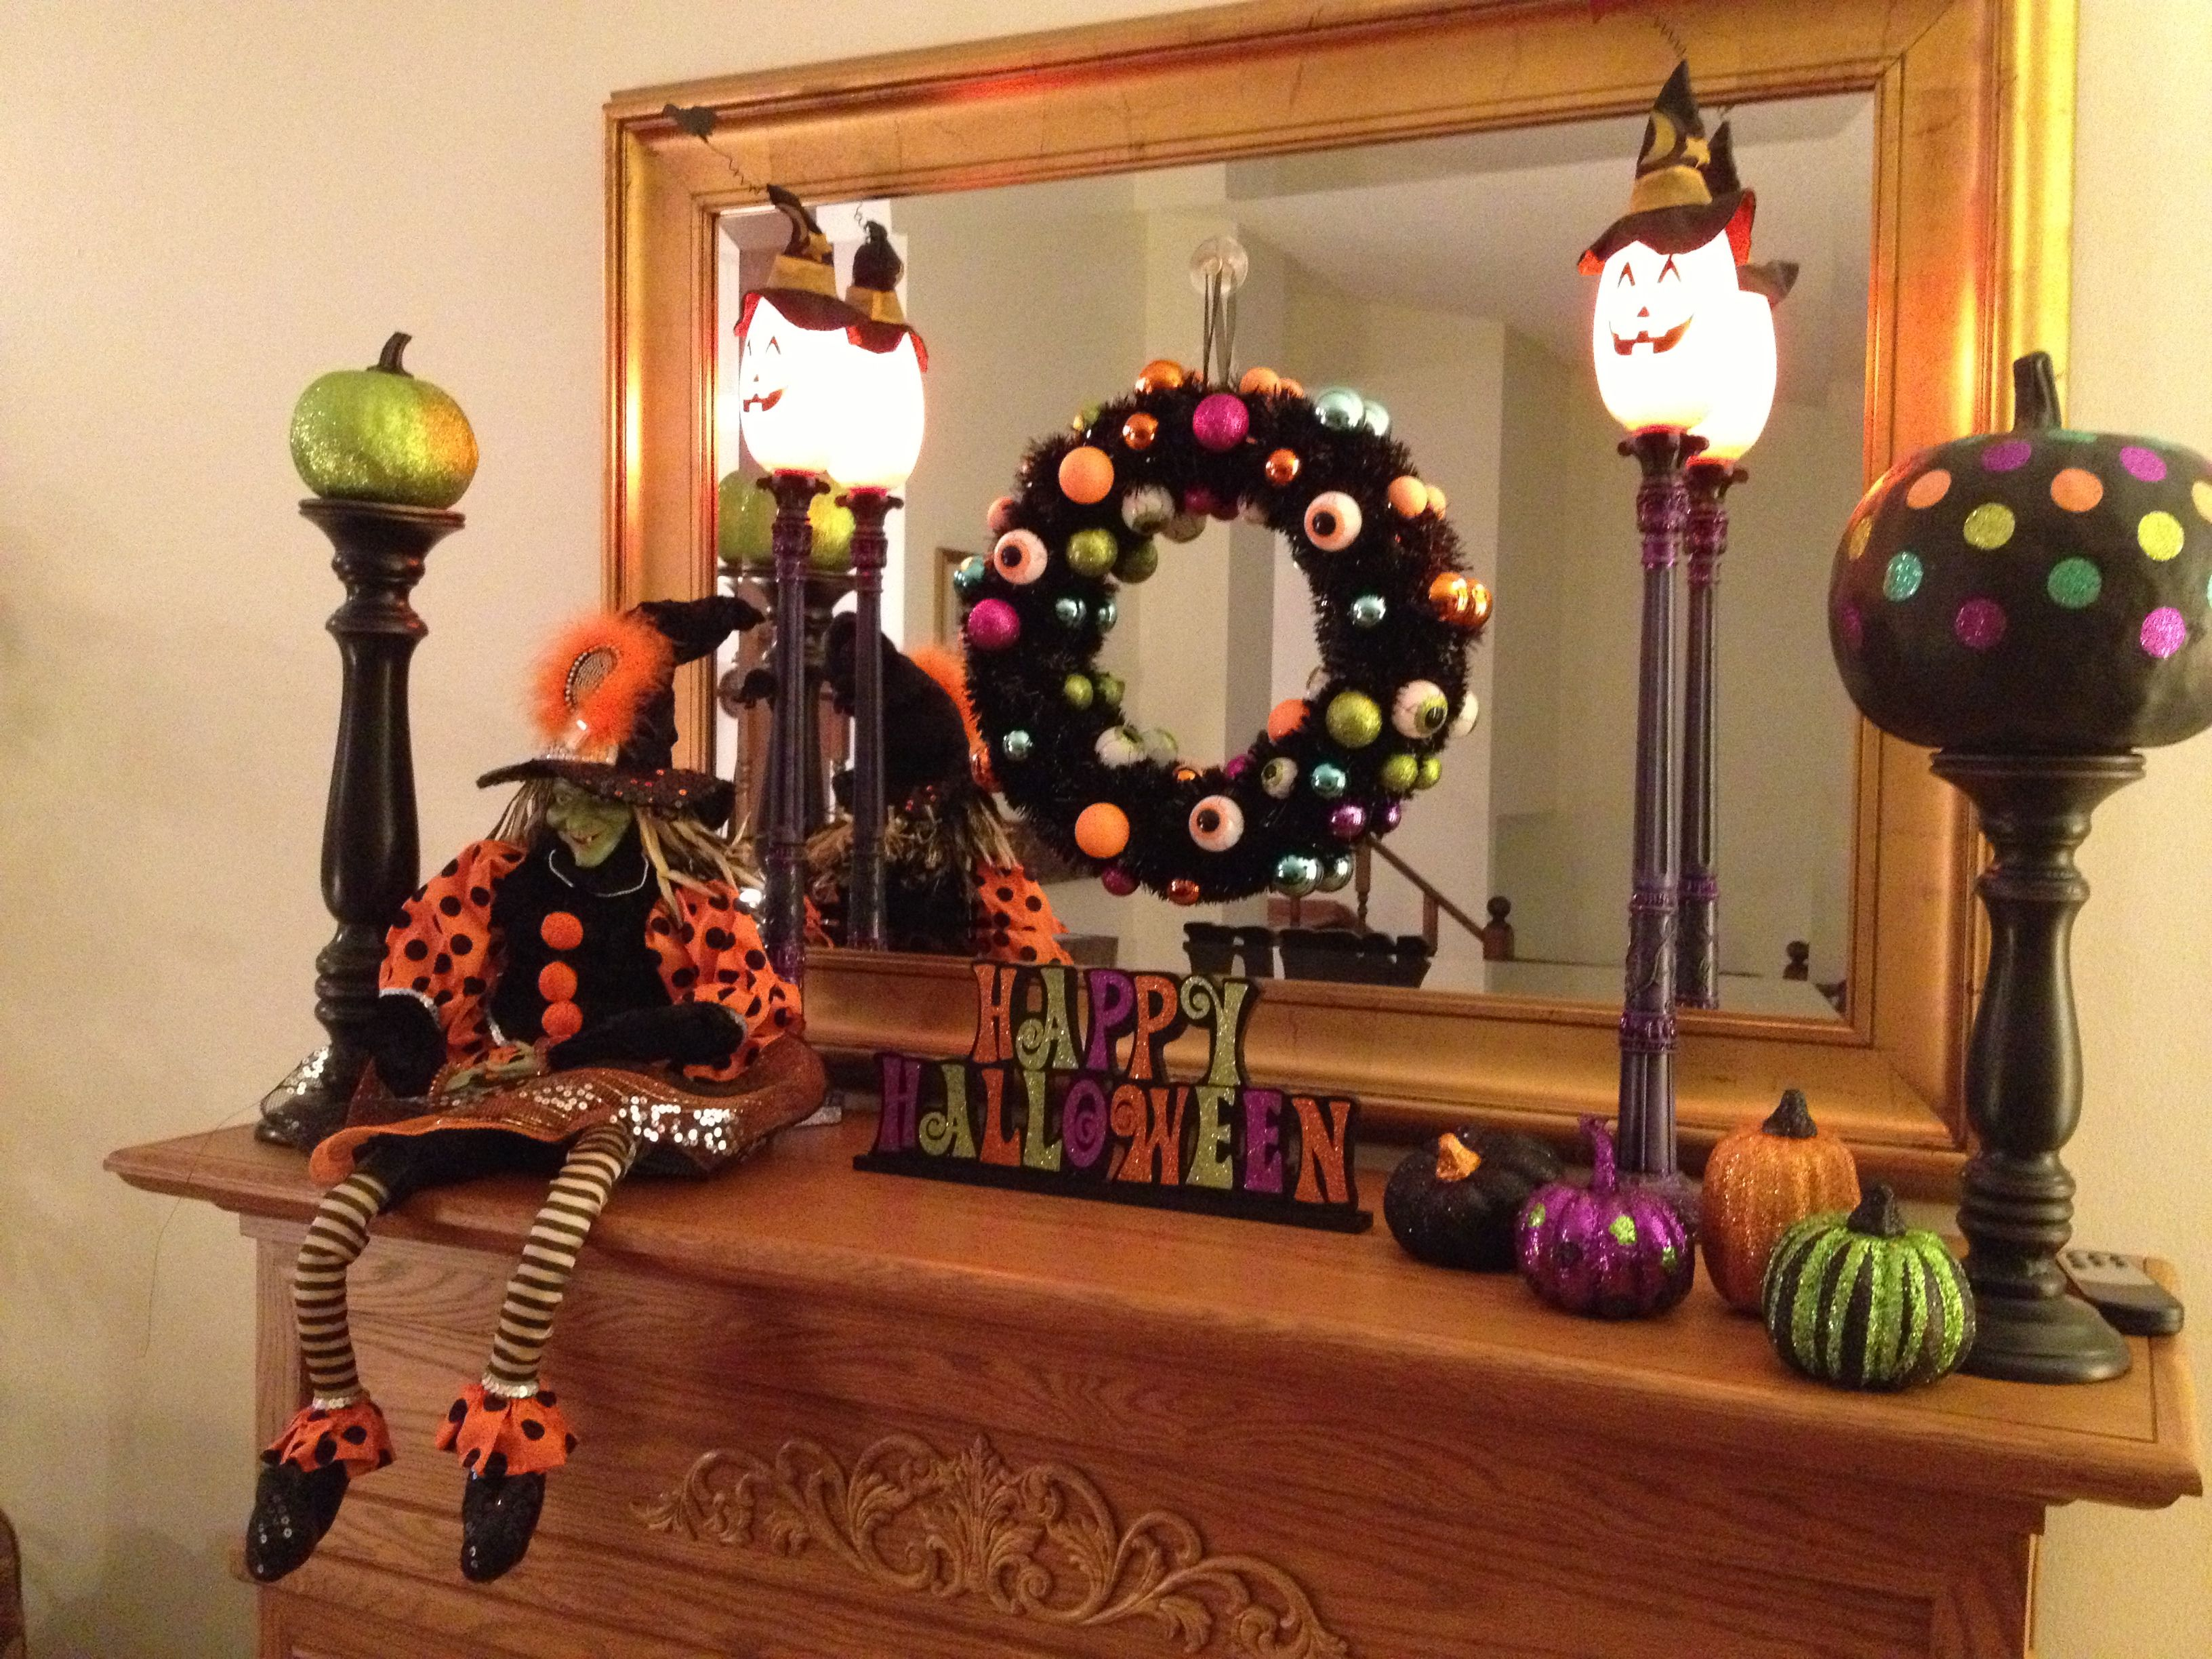 Halloween fireplace mantle decor holidays pinterest for How to decorate your fireplace for halloween